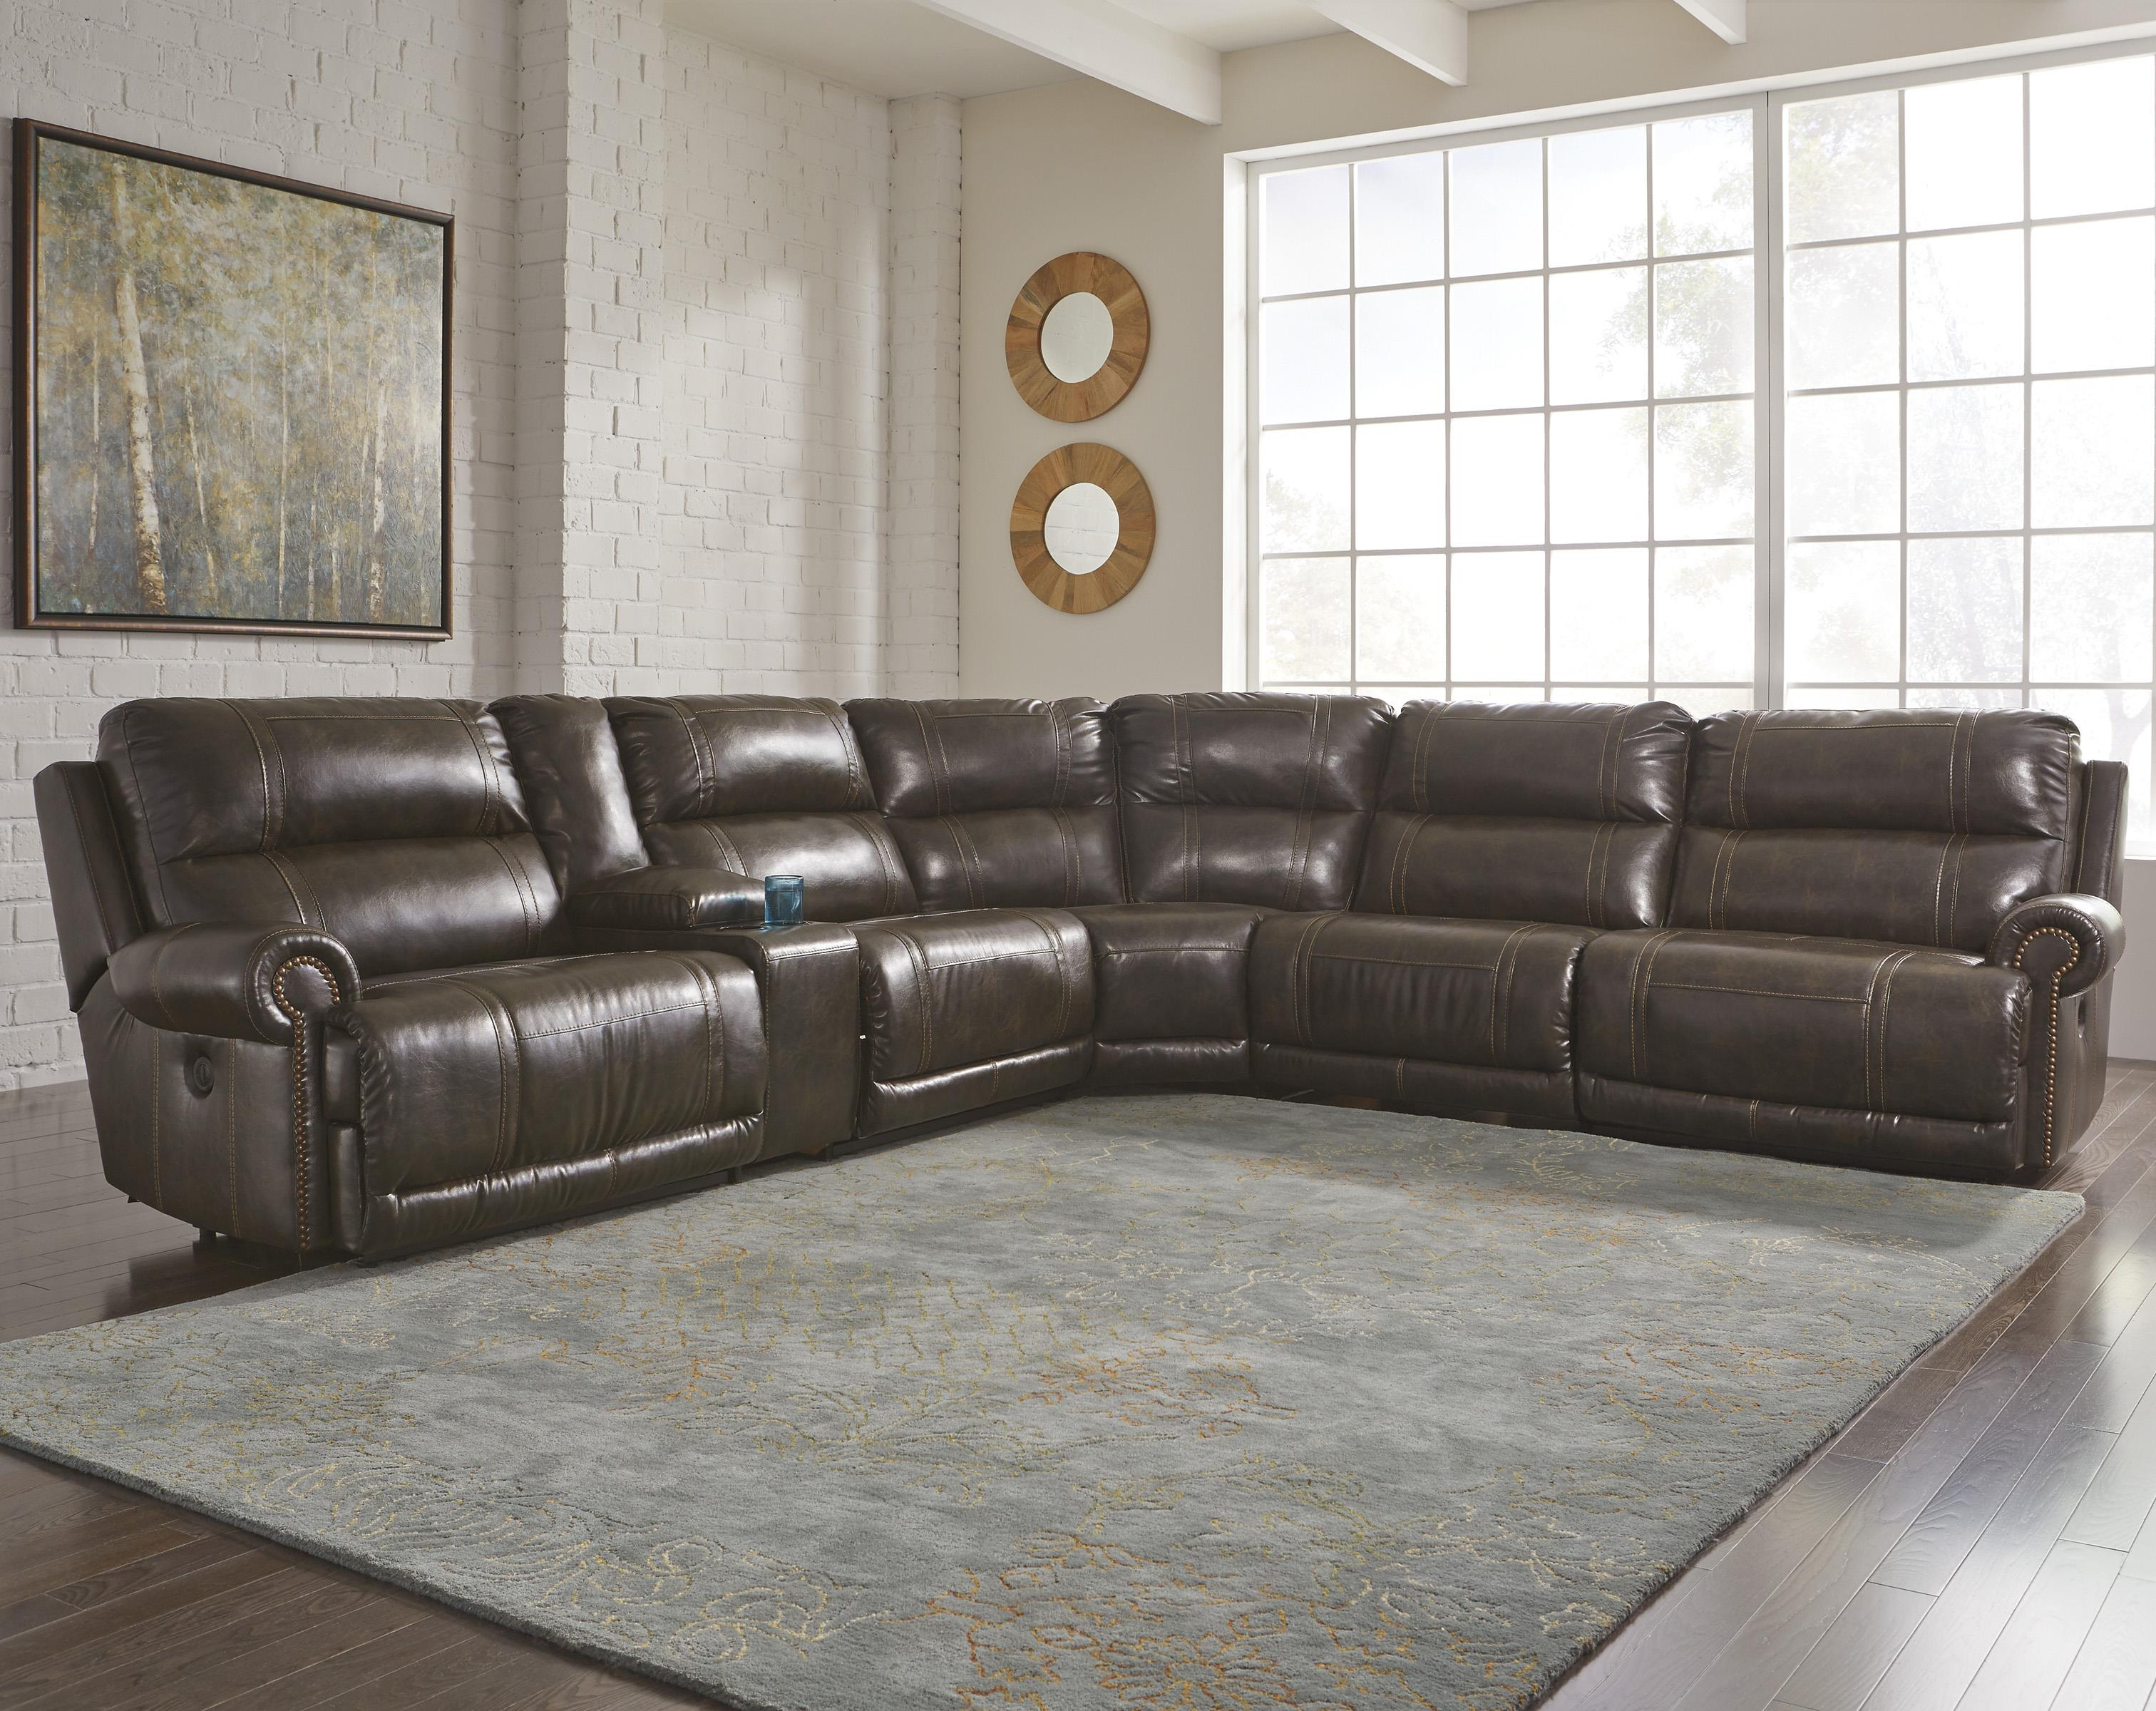 Signature Design by Ashley Dak DuraBlend® 6-Piece Power Reclining Sectional - Item Number: 2270058+57+19+77+46+62